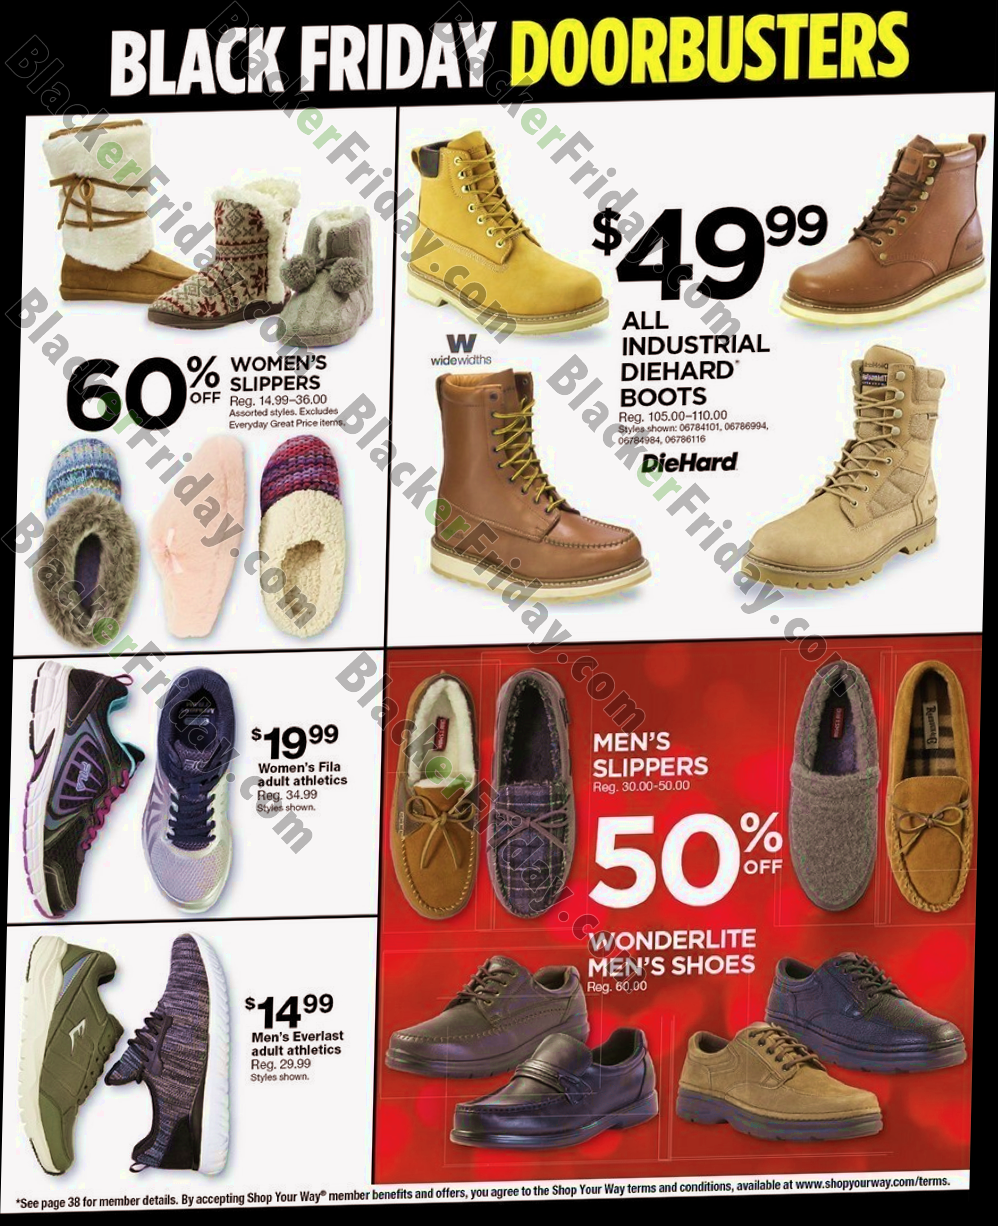 Sears Black Friday 2020 Sale - What to